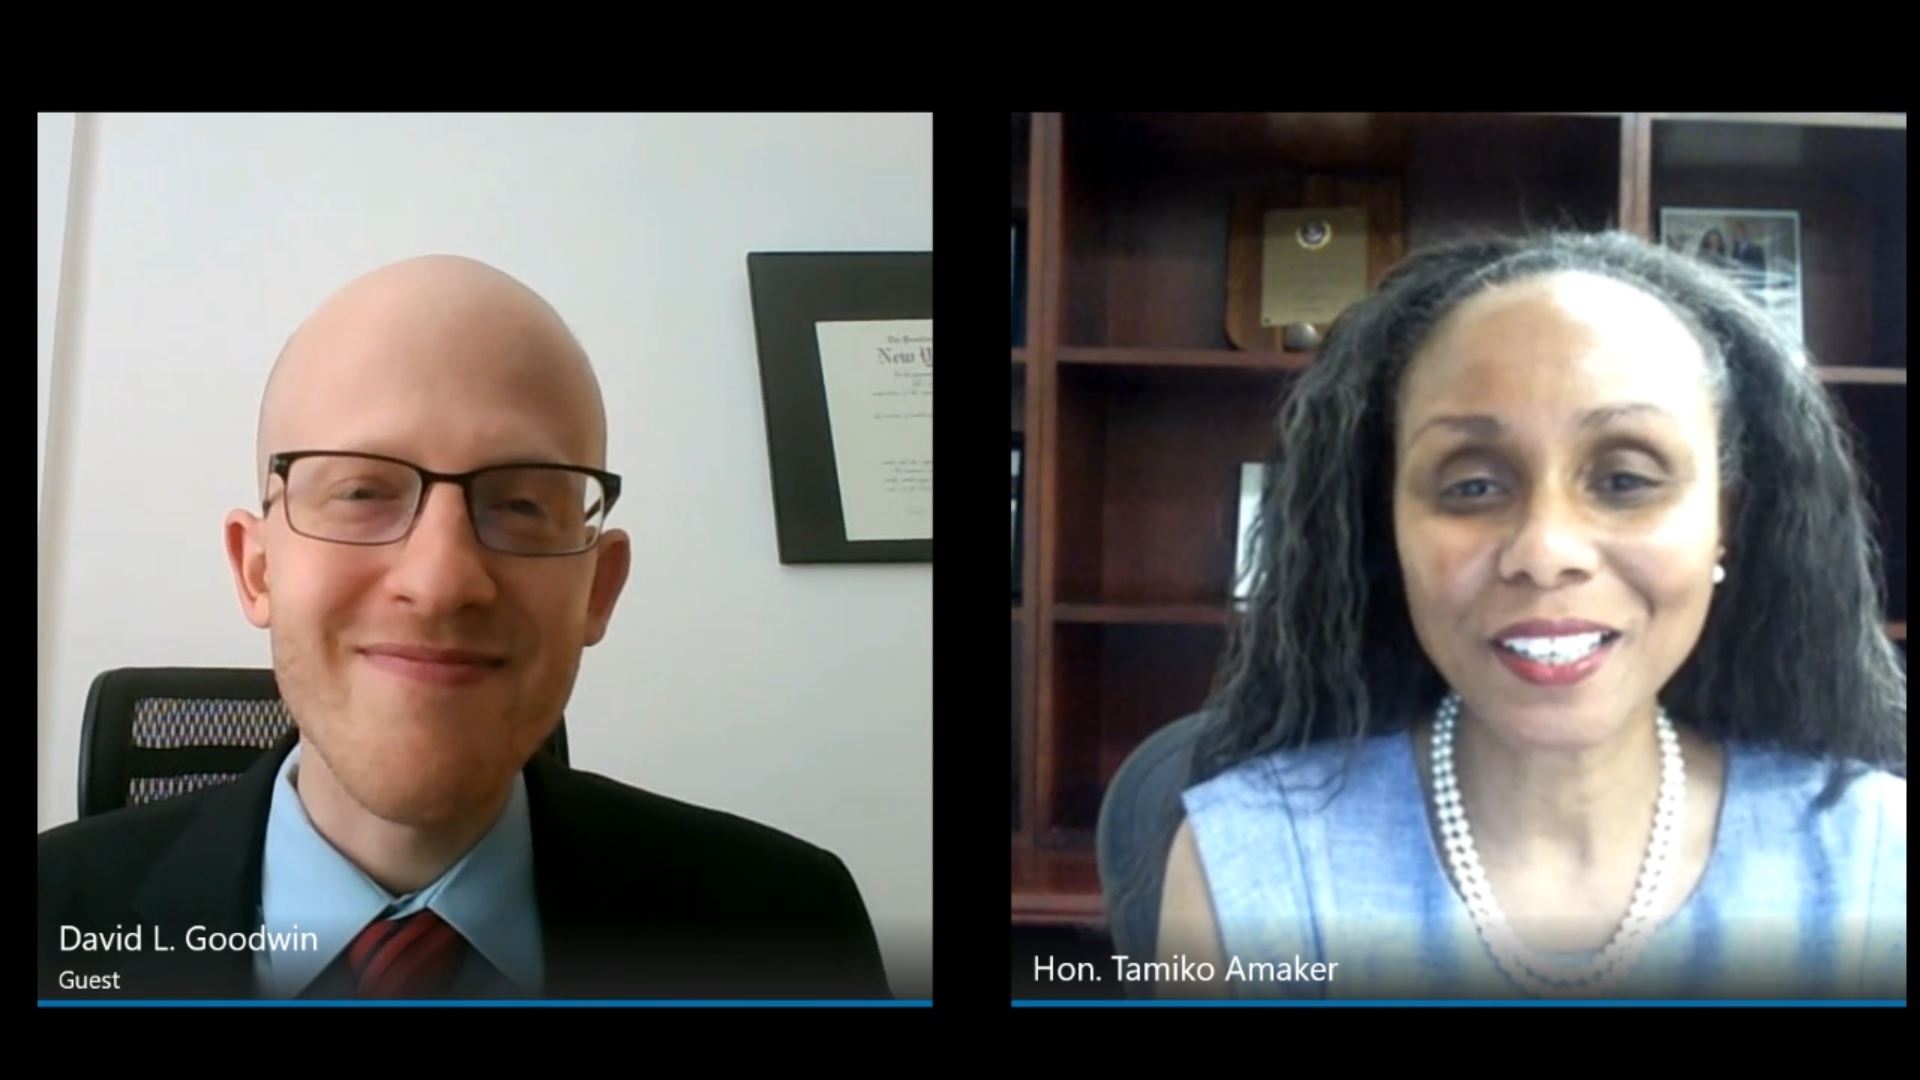 Hon. Tamiko A. Amaker, Administrative Judge of the NYC Criminal Court, interviewed by David L. Goodwin